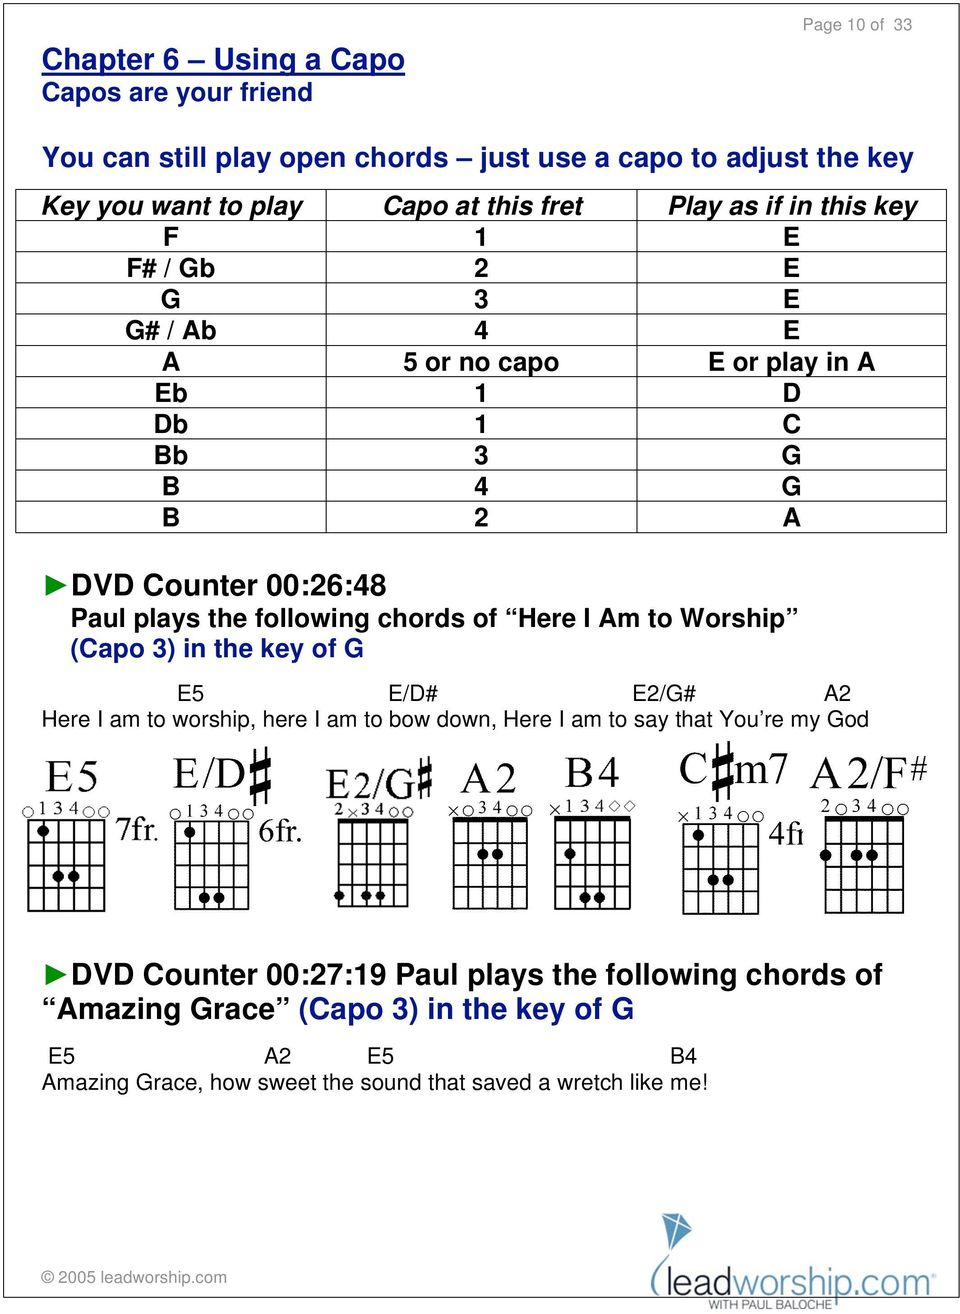 Here I Am To Worship Chords Companion Instruction Booklet Pdf